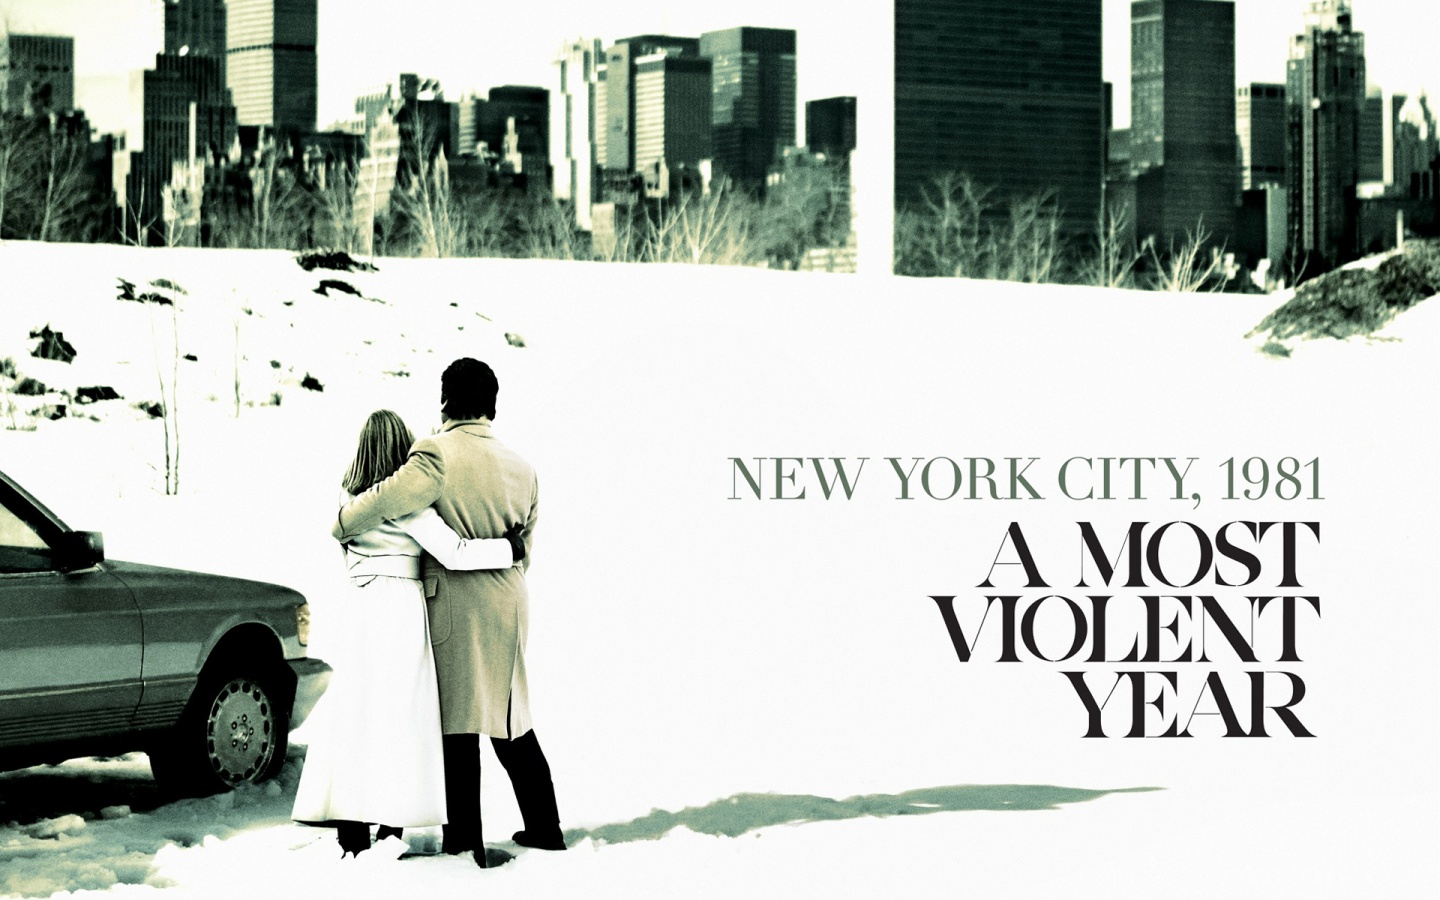 a_most_violent_year_2014_movie-1440x900